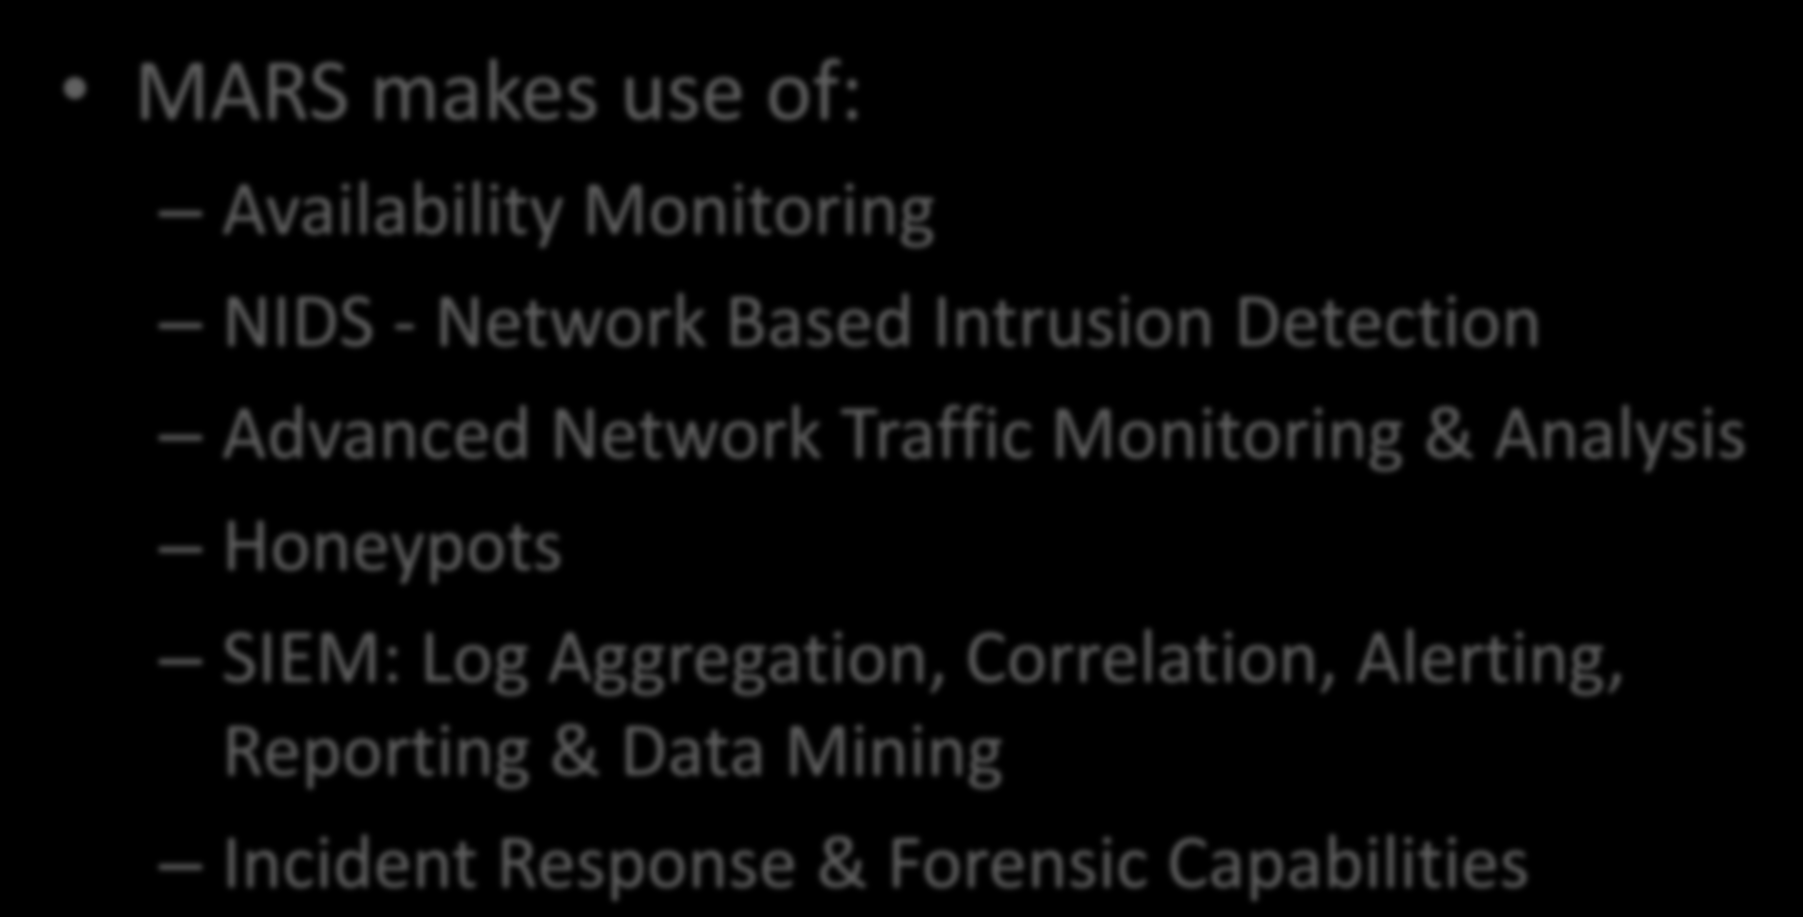 MARS makes use of: Availability Monitoring NIDS - Network Based Intrusion Detection Advanced Network Traffic Monitoring &